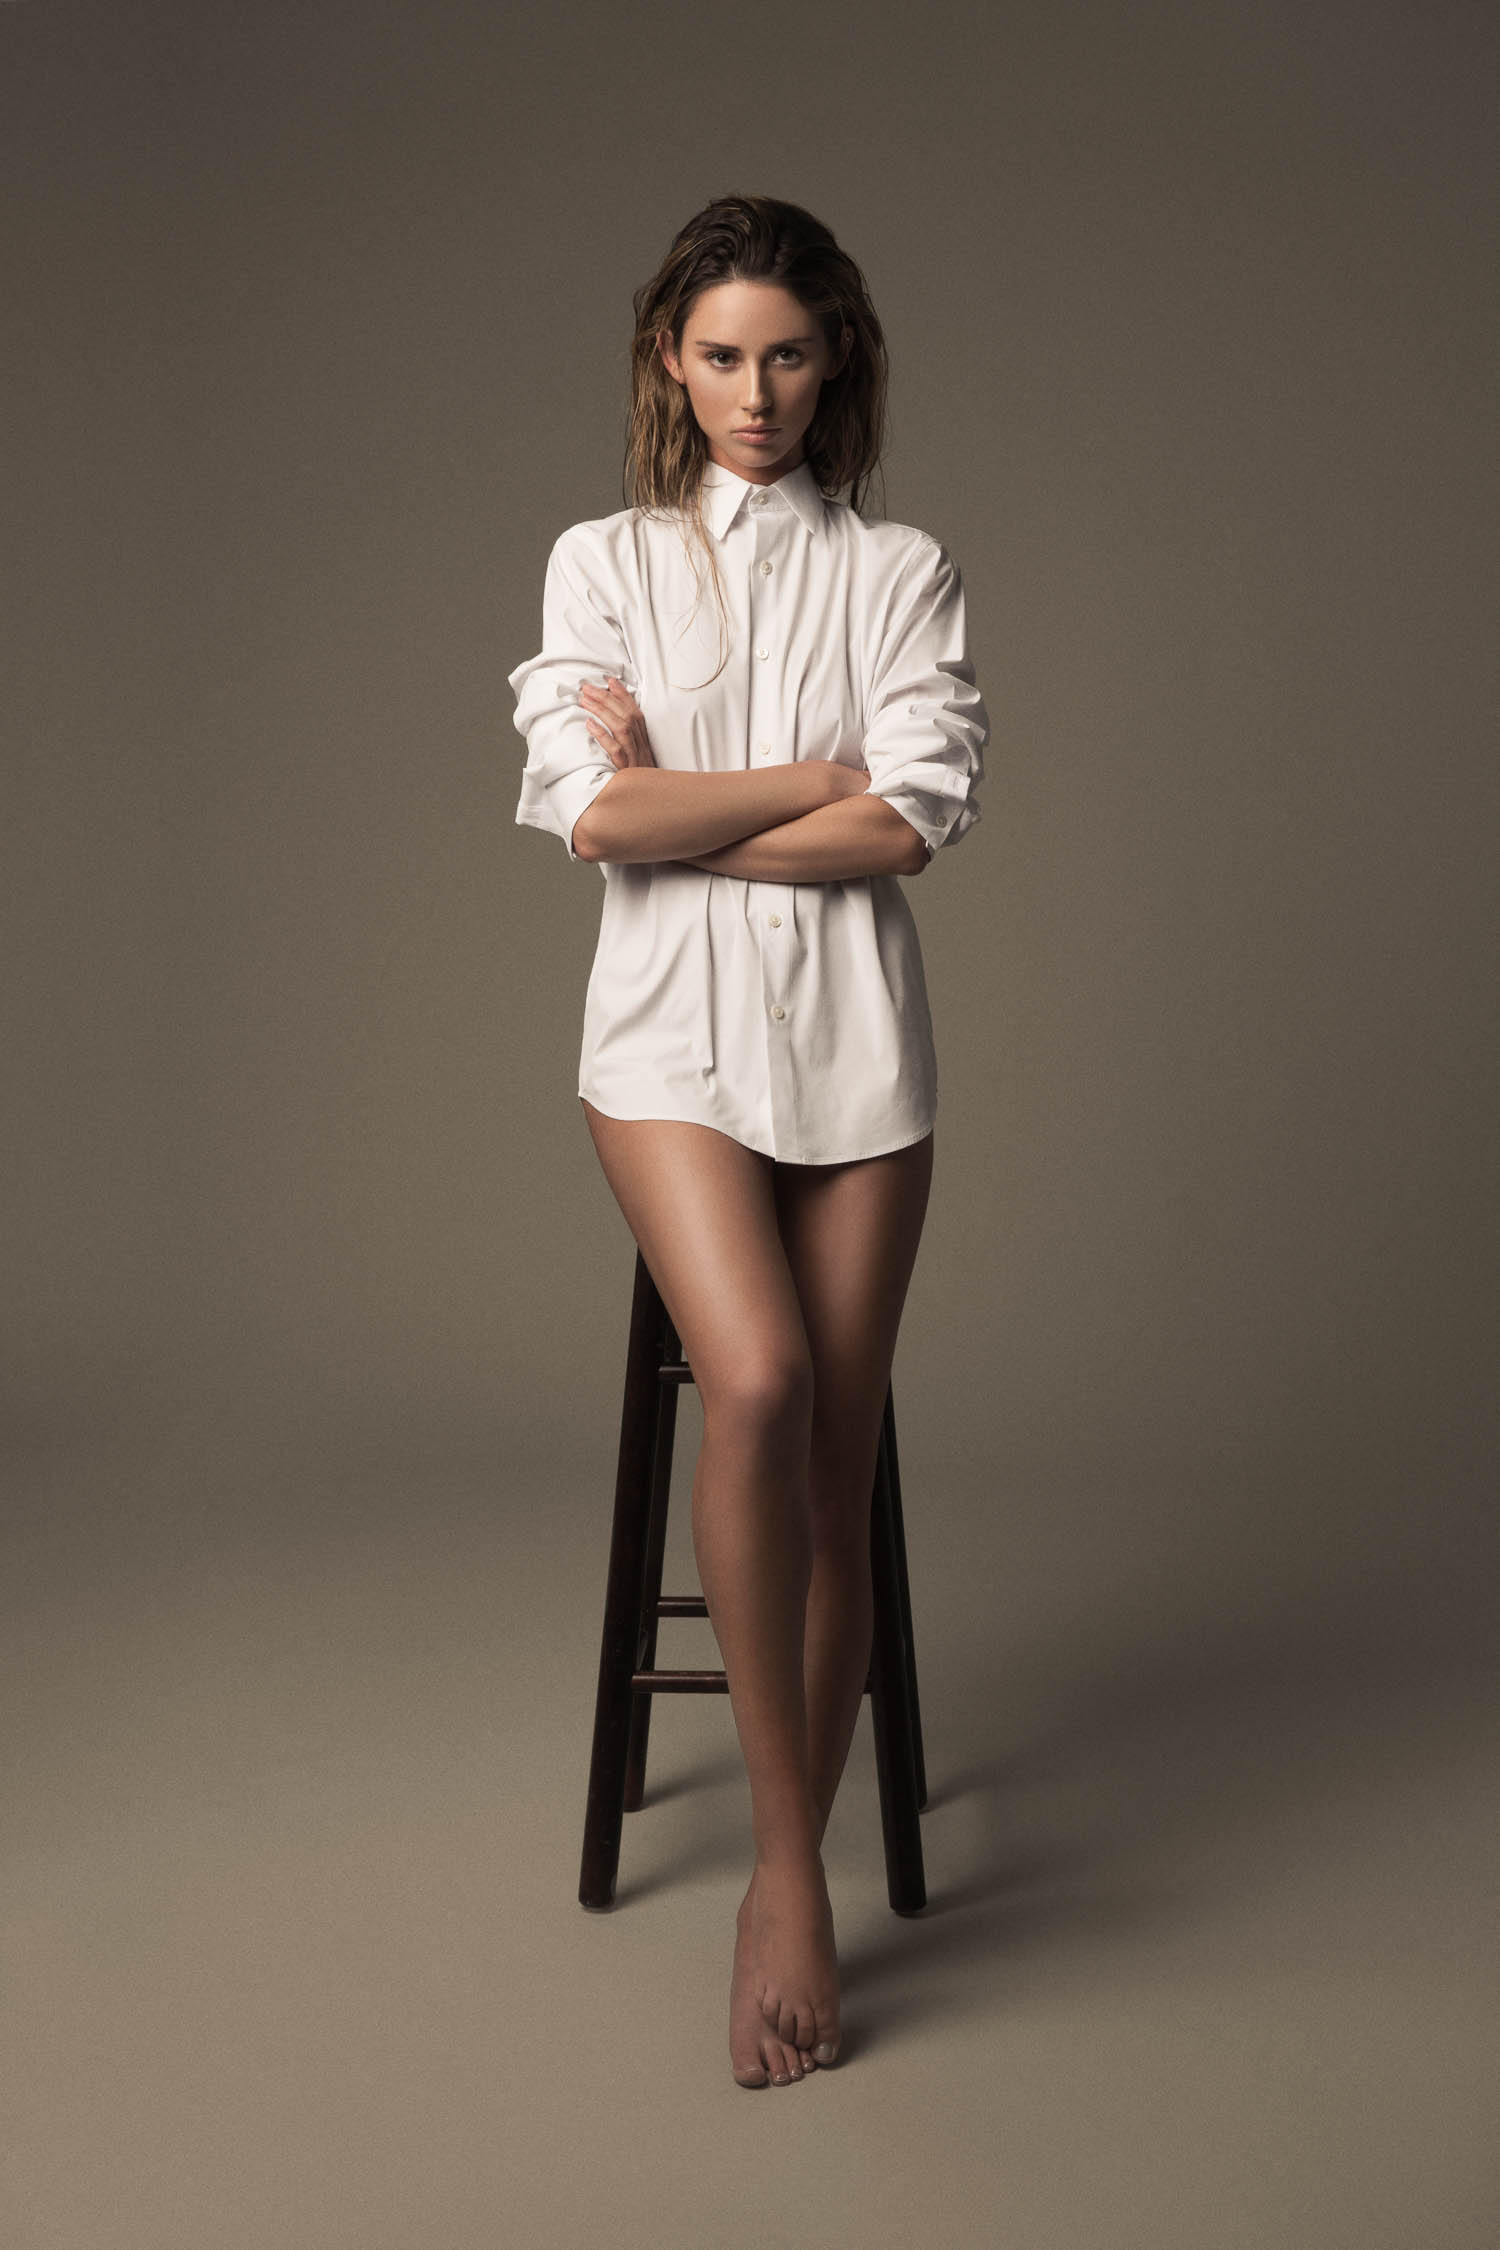 Model in a white dress shirt on a wooden stool